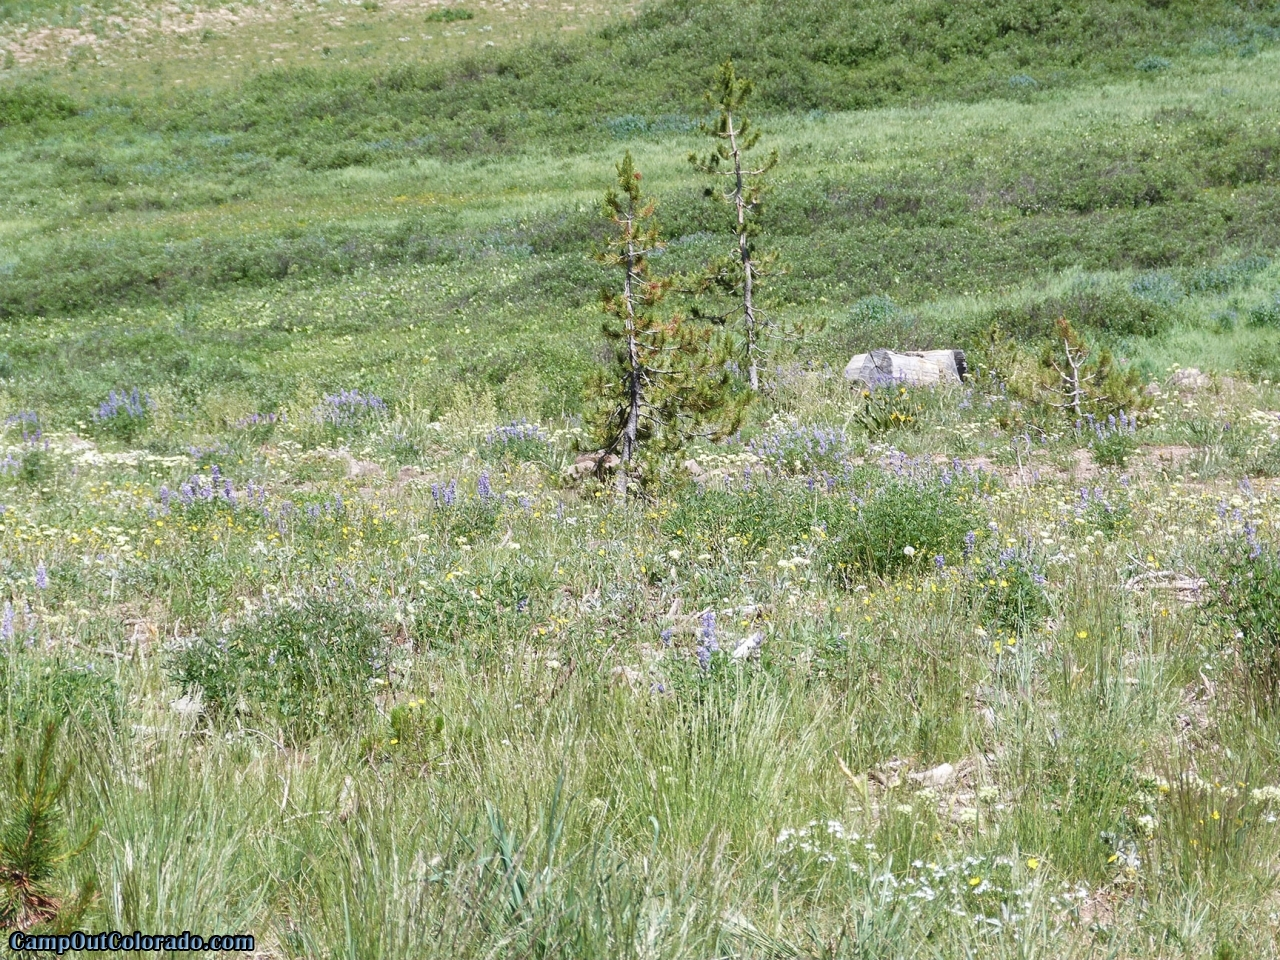 campoutcolorado-meadows-campground-rabbit-ears-meadow